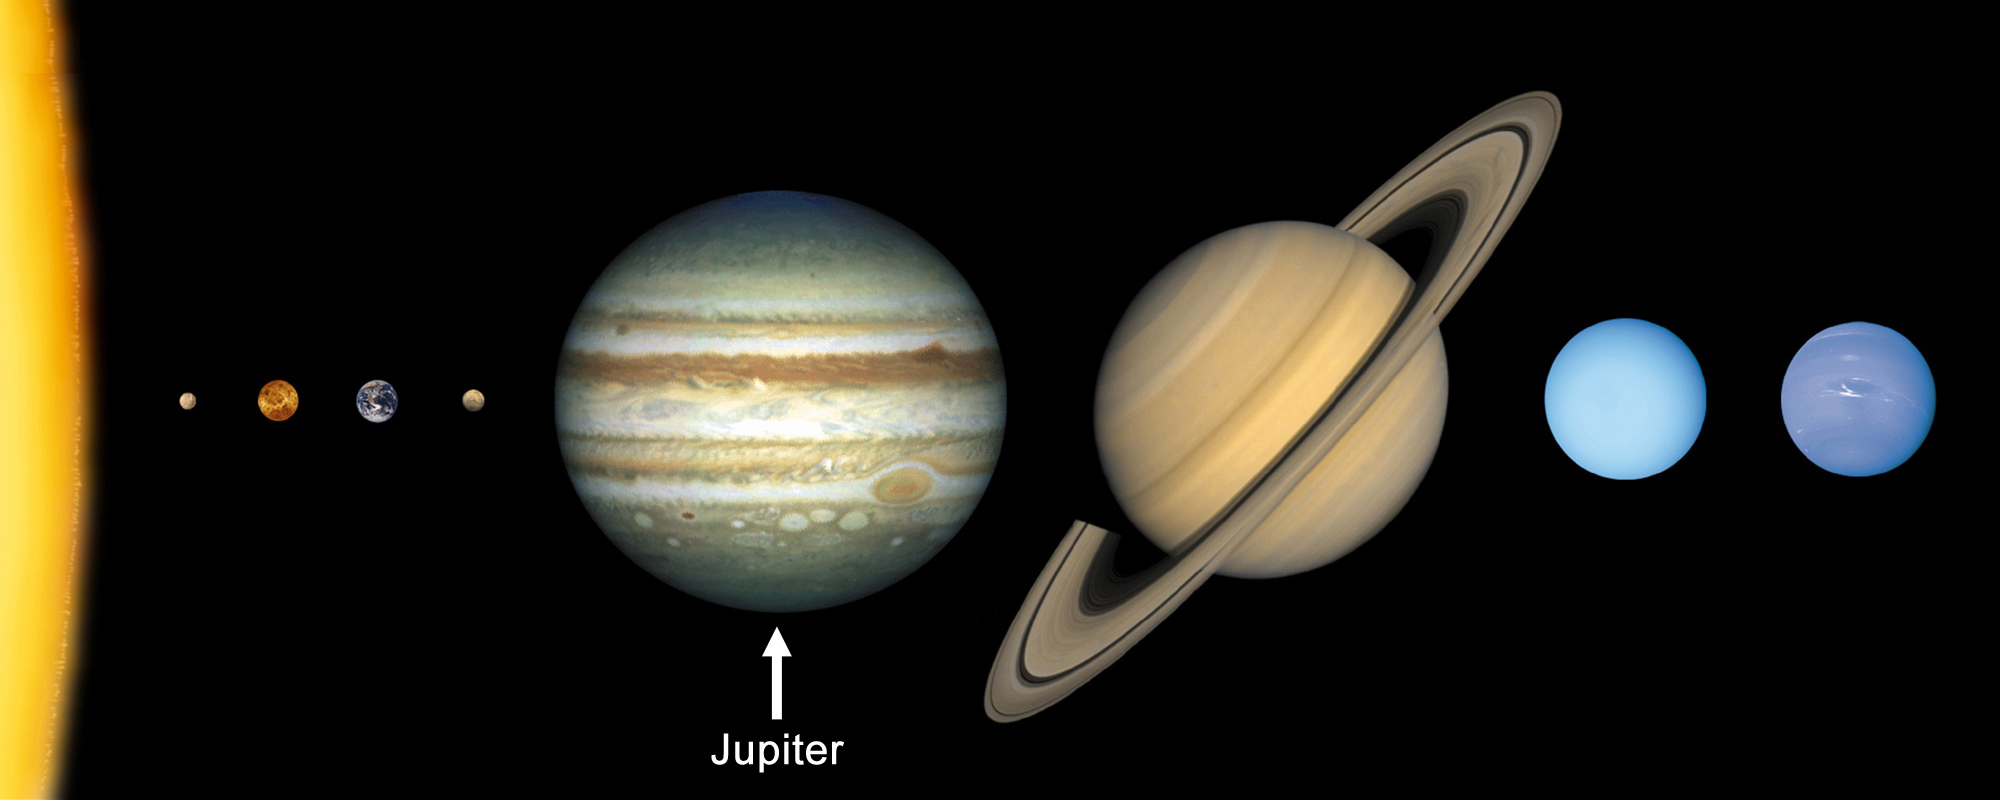 Position of Jupiter in the Solar System